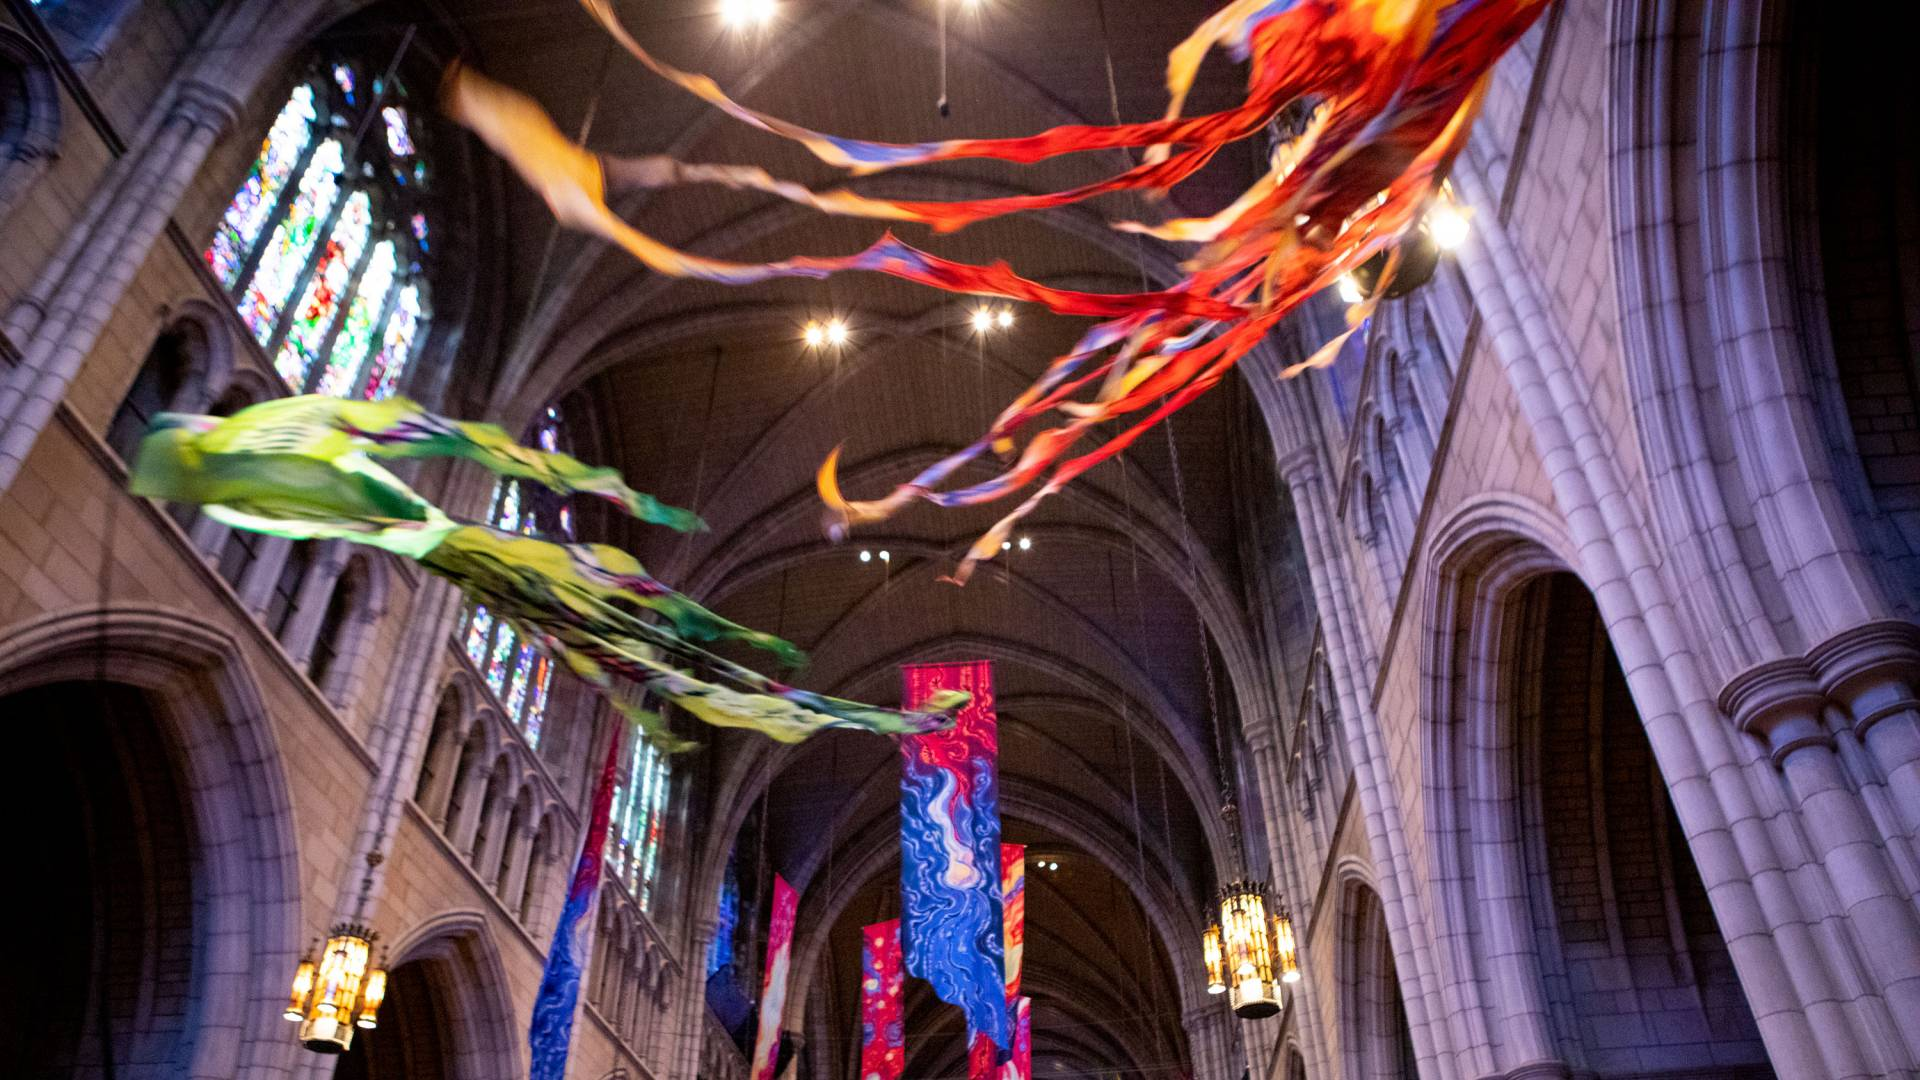 Kites fly in the University Chapel as a traditional part of Opening Exercises